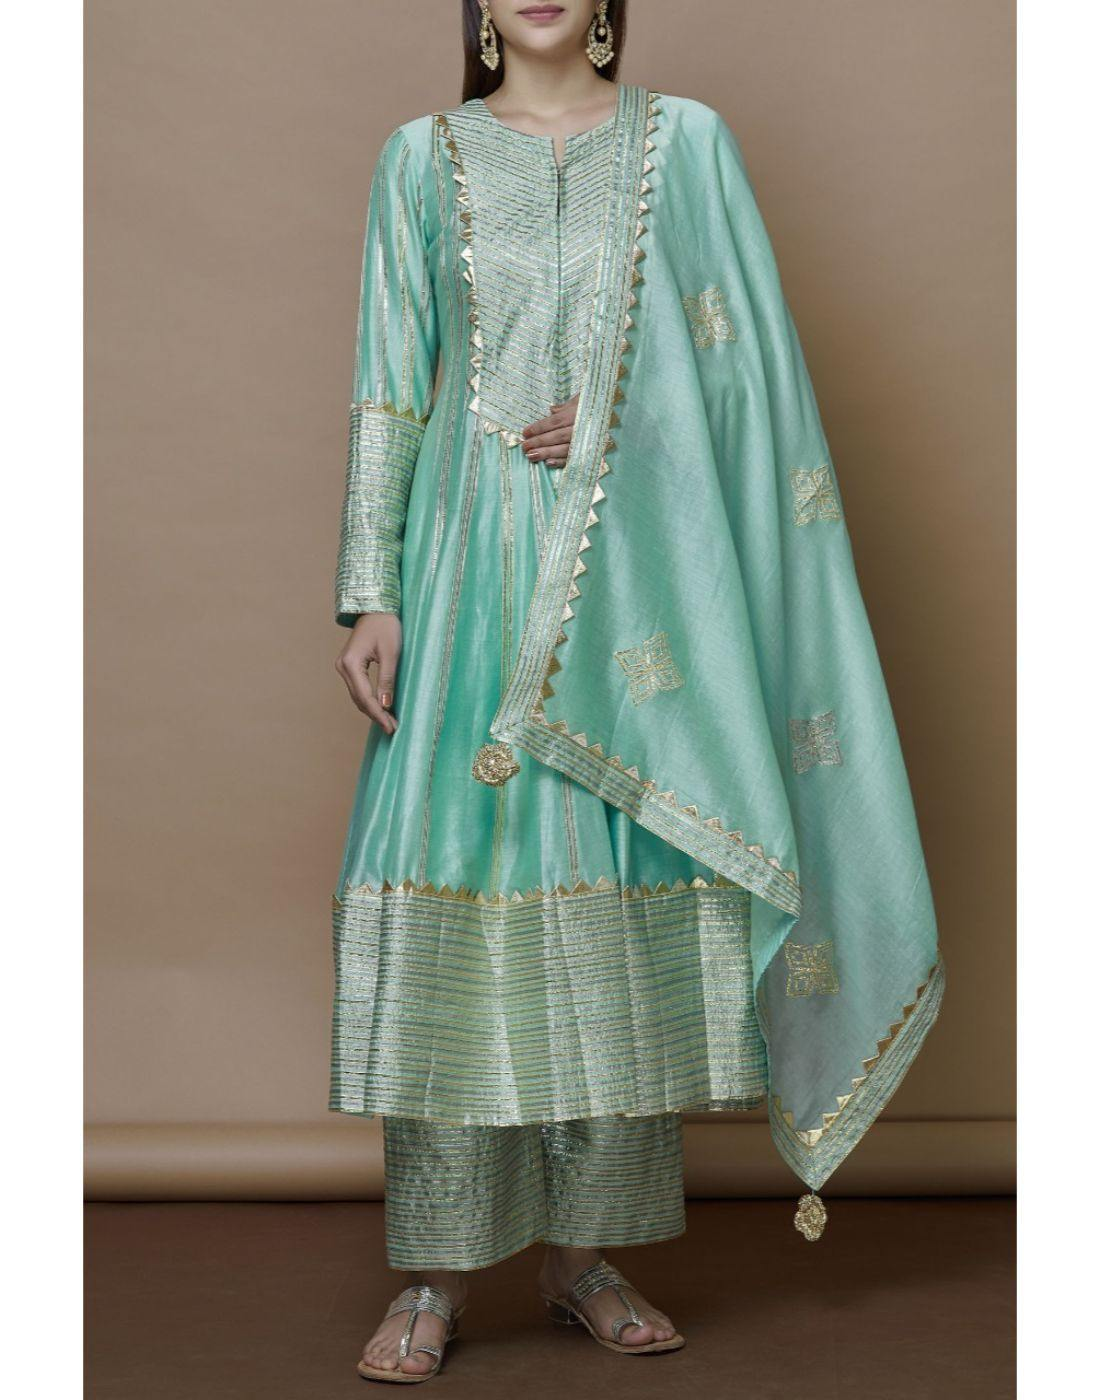 Rent Turquoise Blue Color Full Ebroidered Kurta Sharara With Dupatta-Women-Glamourental